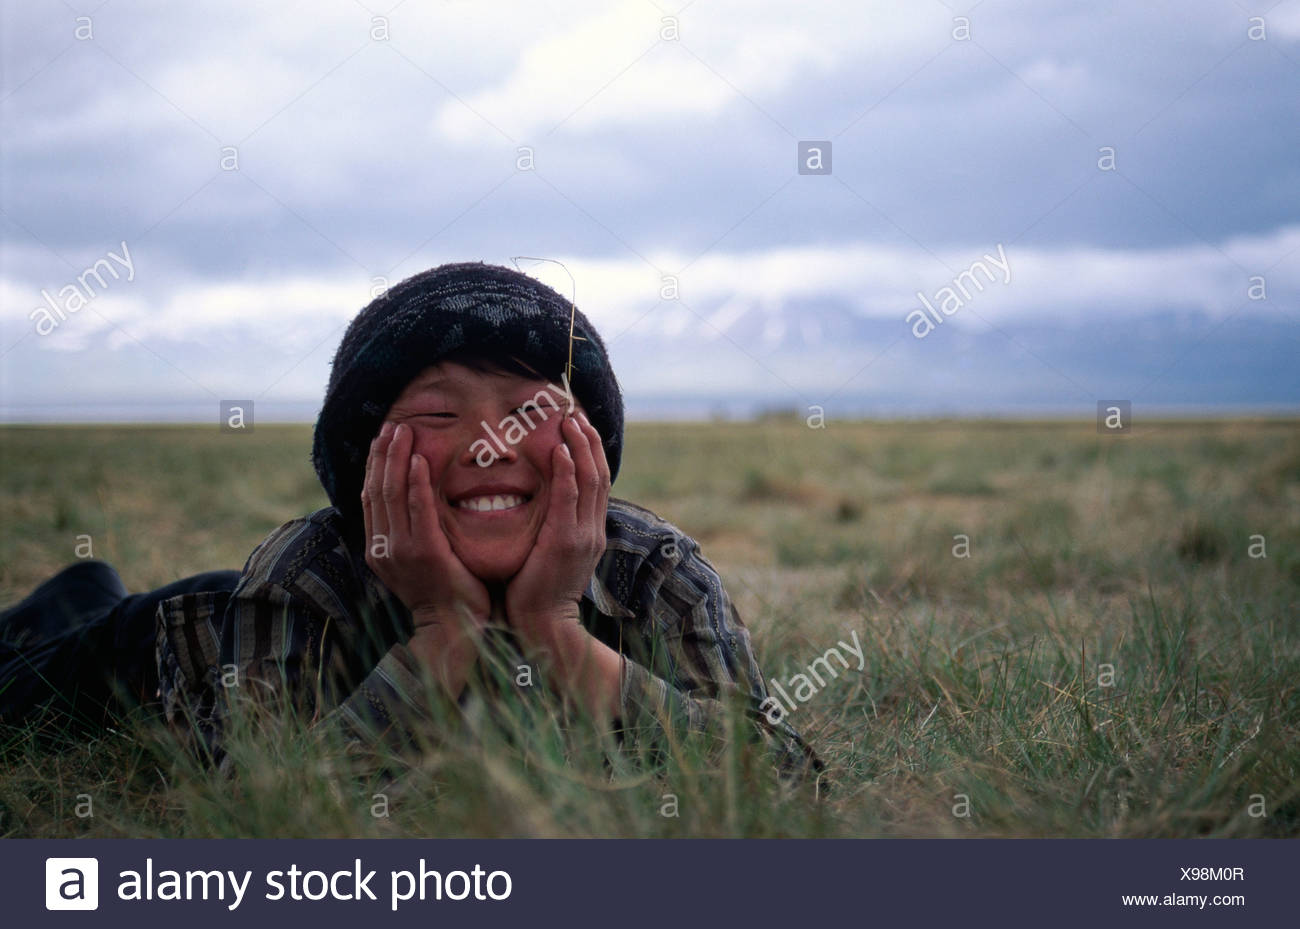 Nomad boy lying in the grass, Song-Kul, Kyrgyzstan, Central Asia - Stock Image